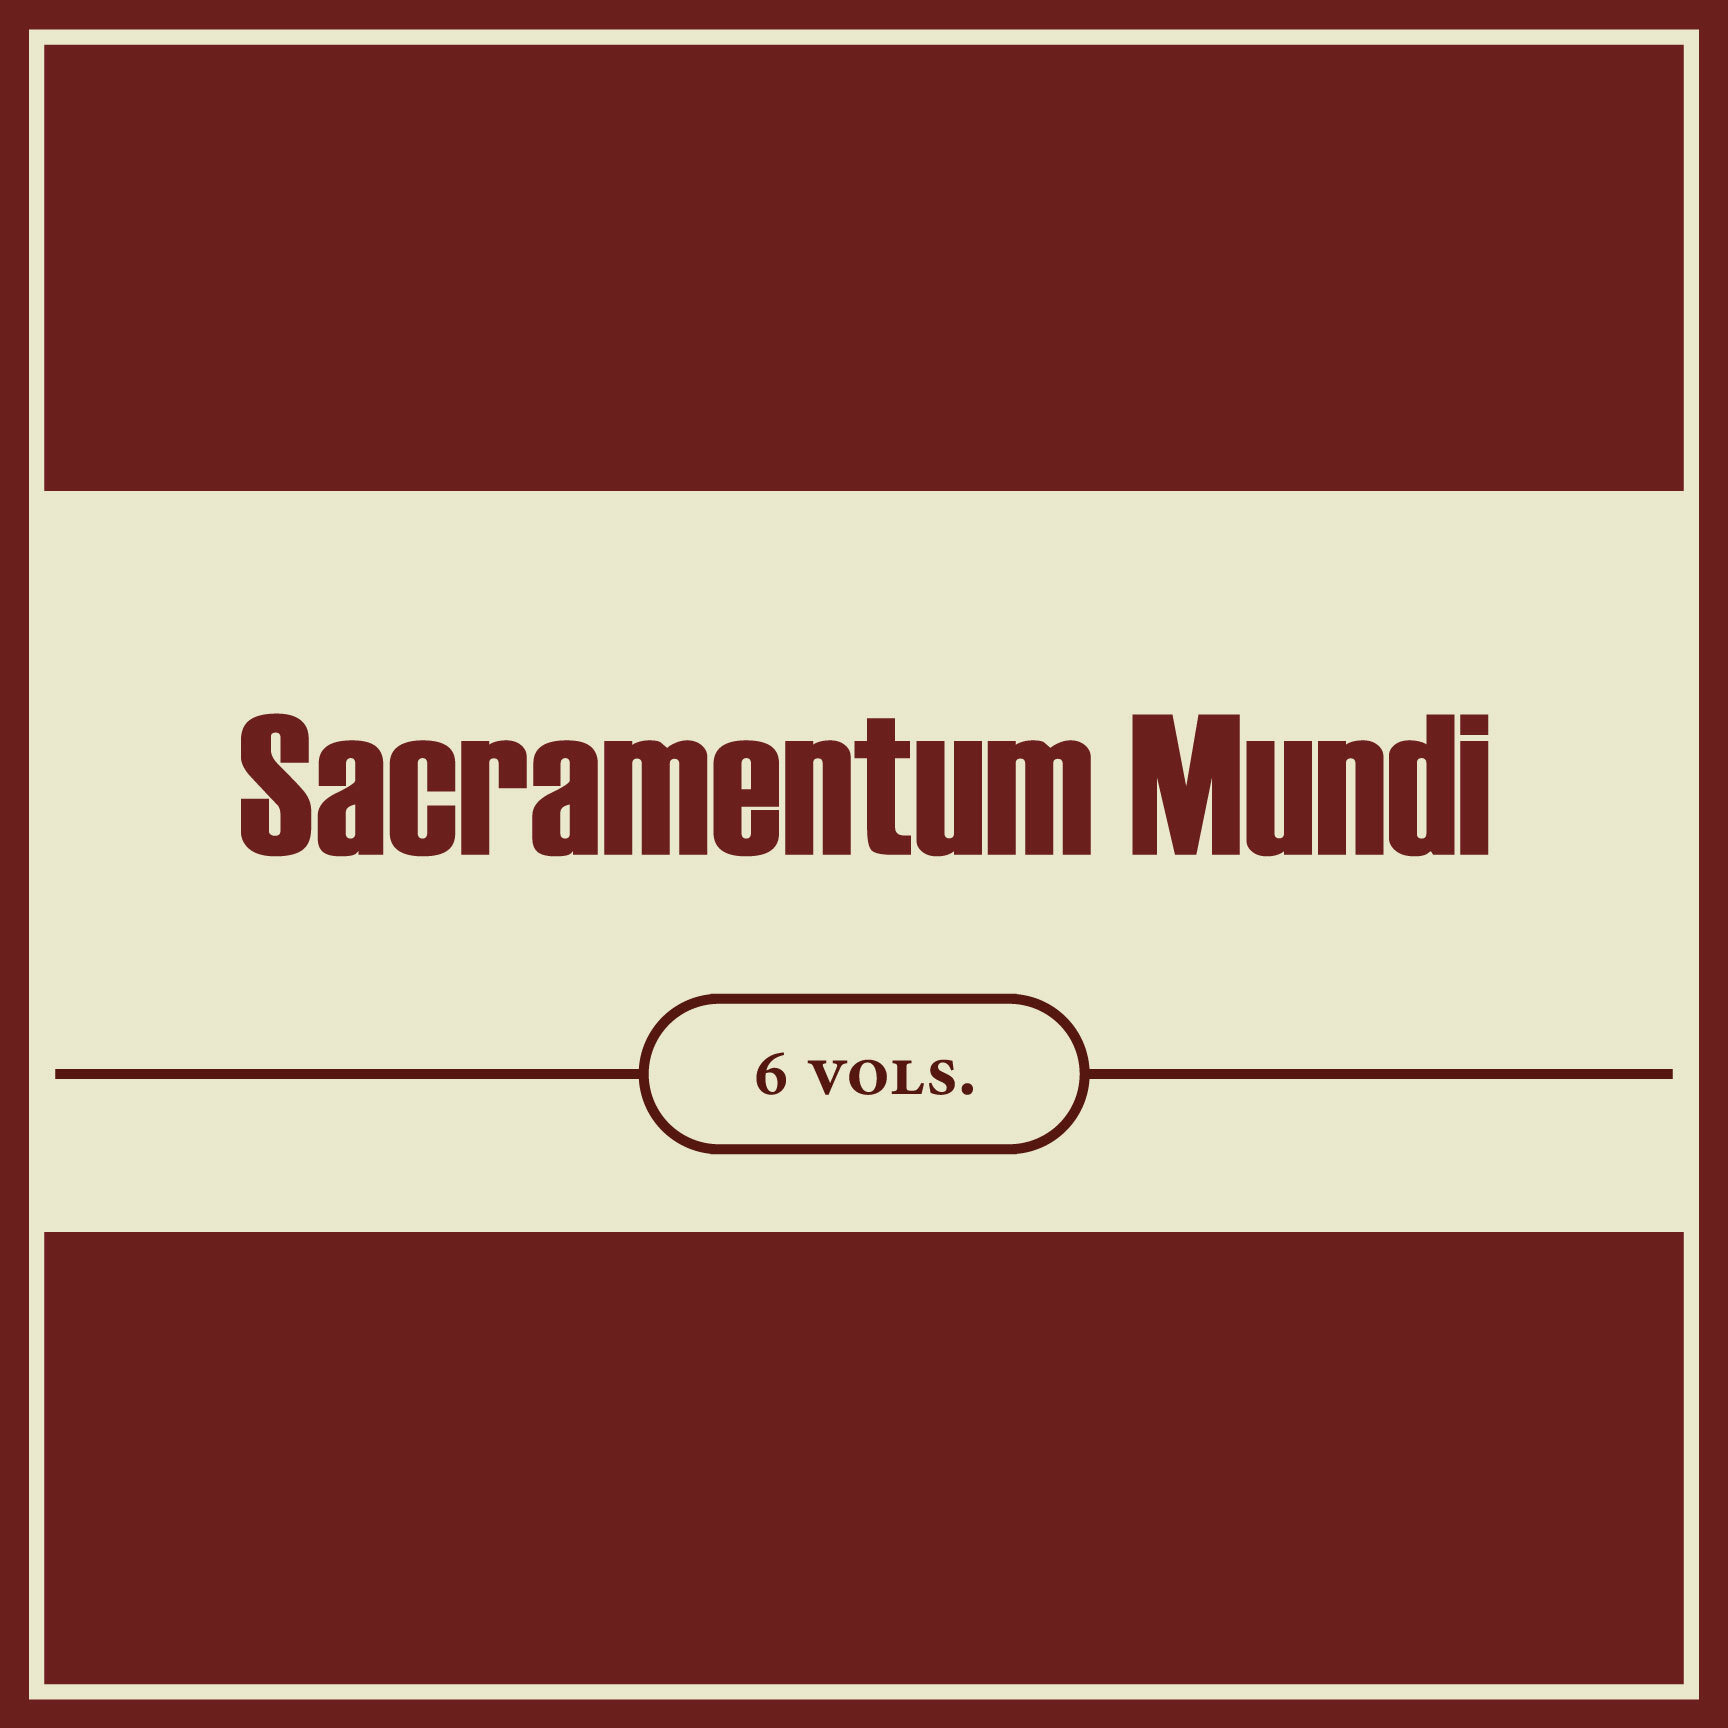 Sacramentum Mundi: An Encyclopedia of Theology (6 vols.)